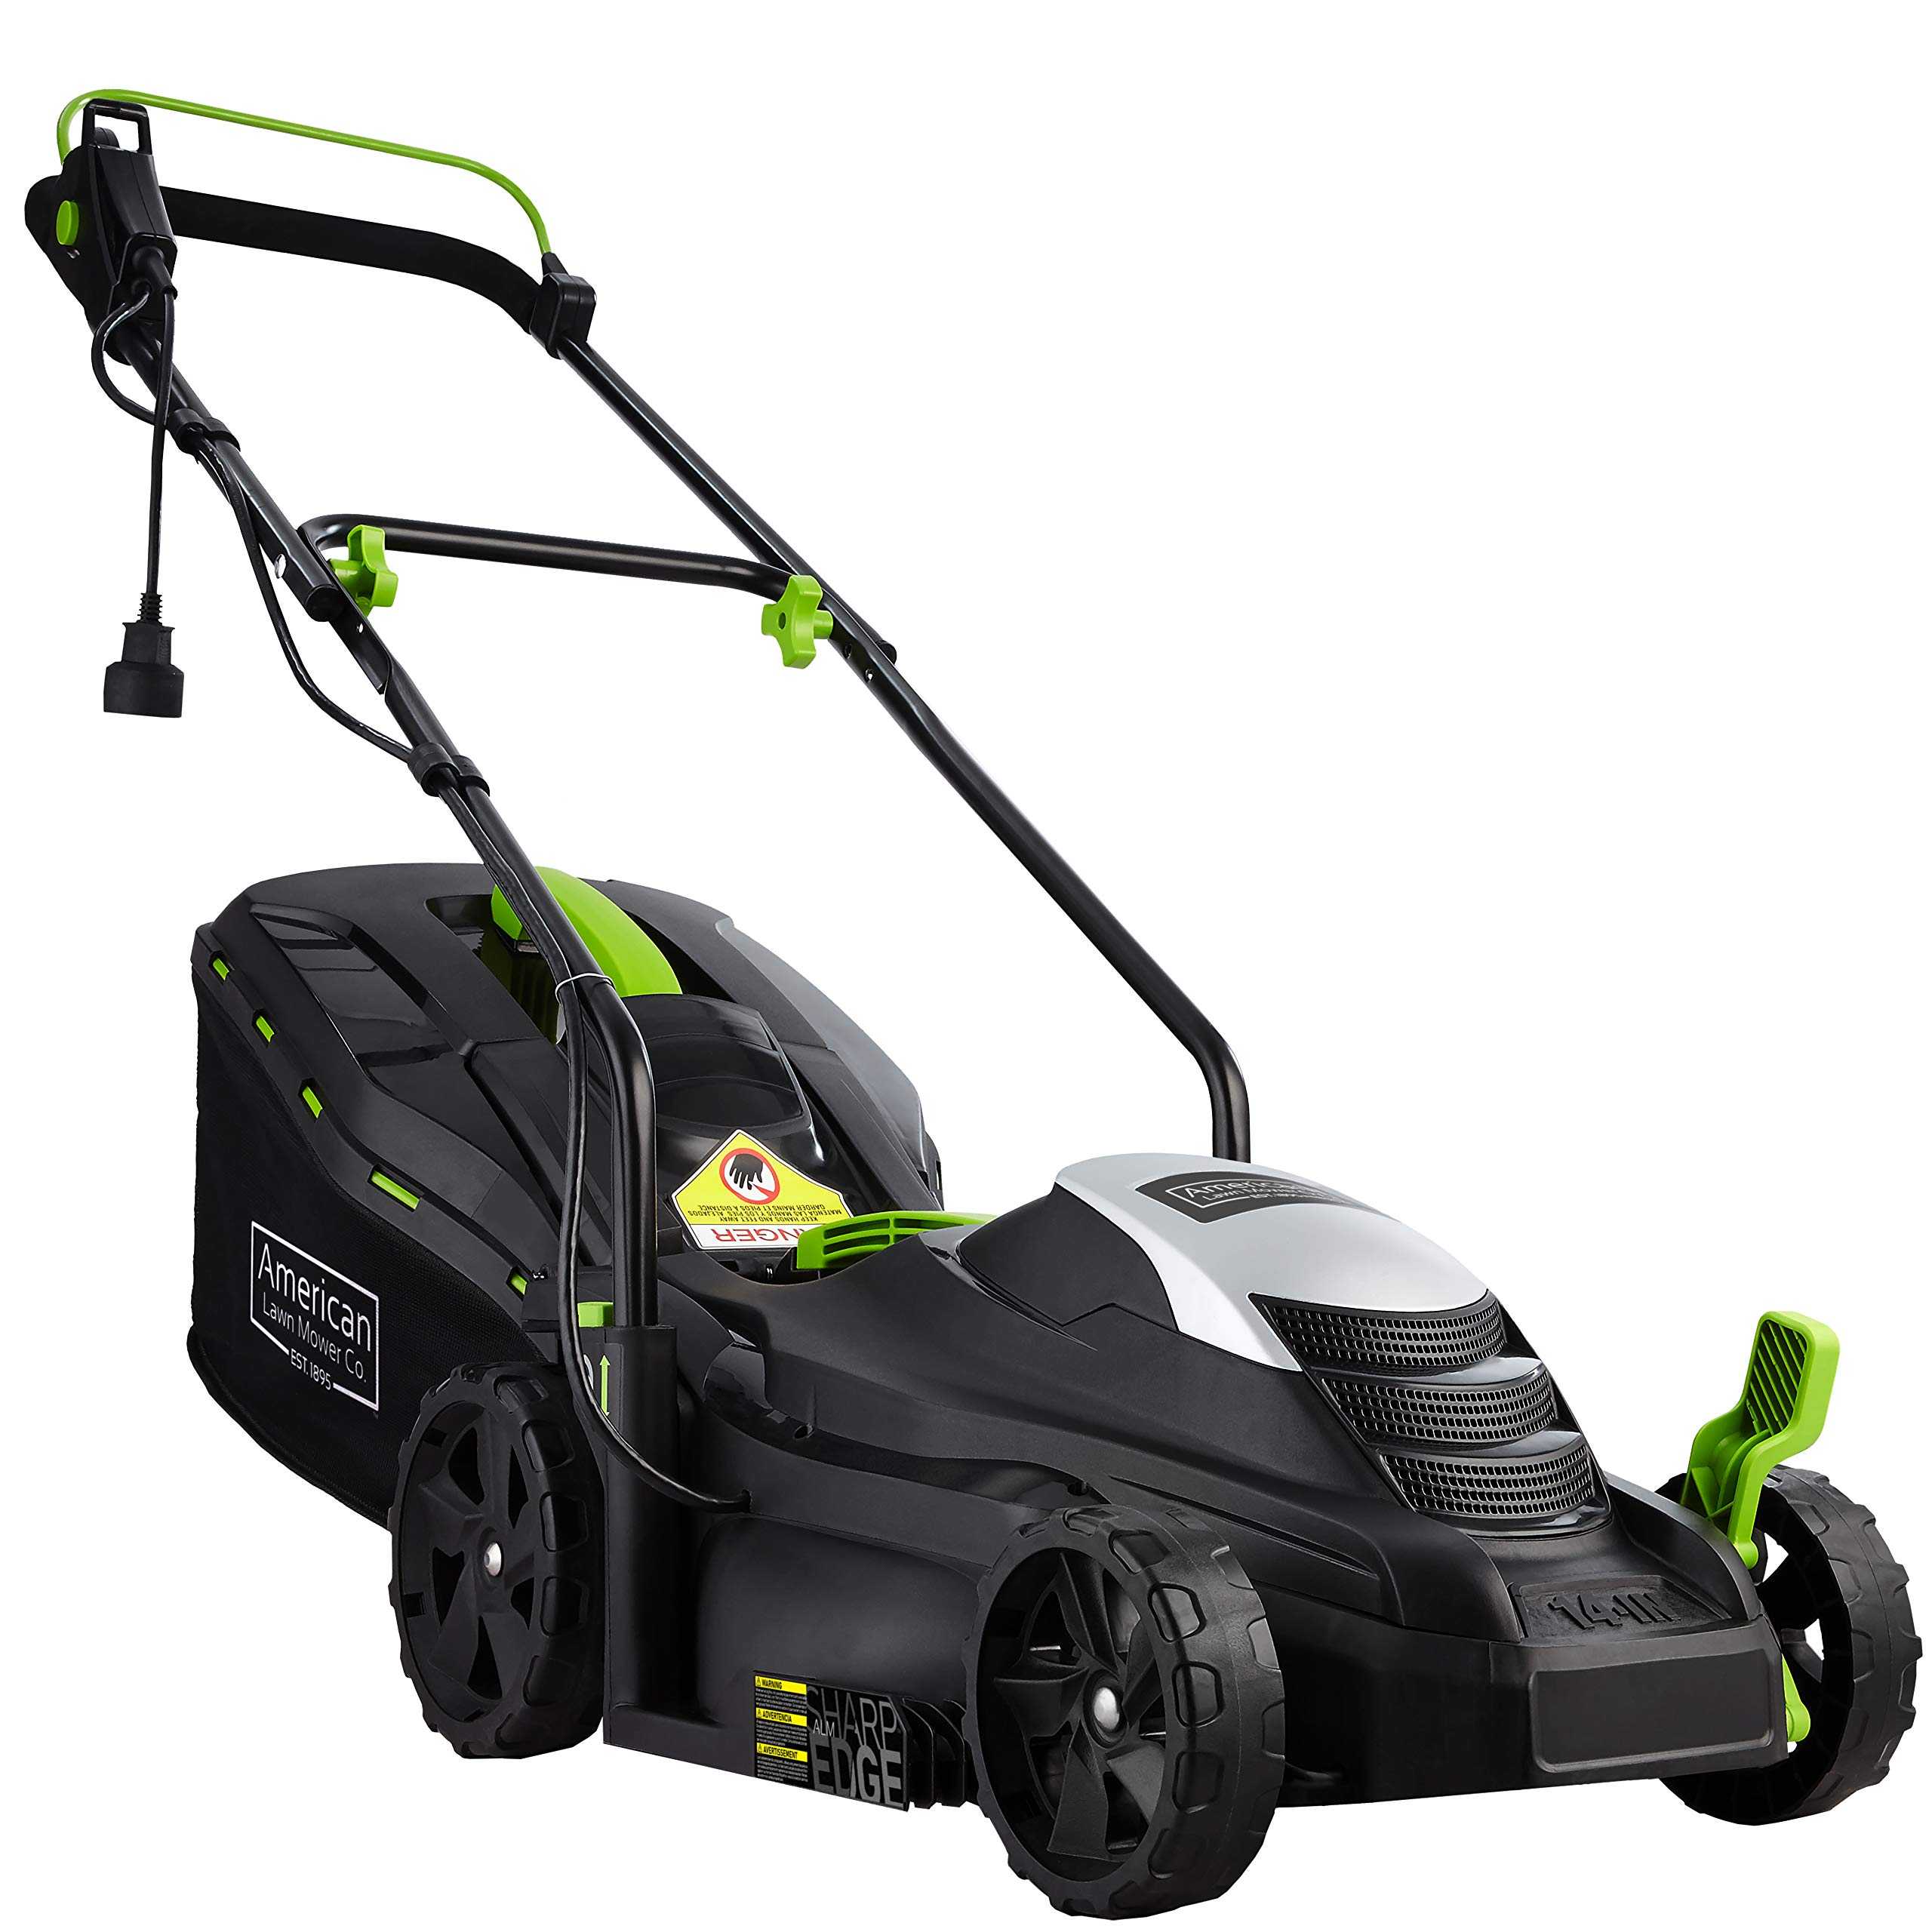 American Lawn Mower Company 50514 14-Inch 11-Amp Corded Electric Lawn Mower, Black by American Lawn Mower Company